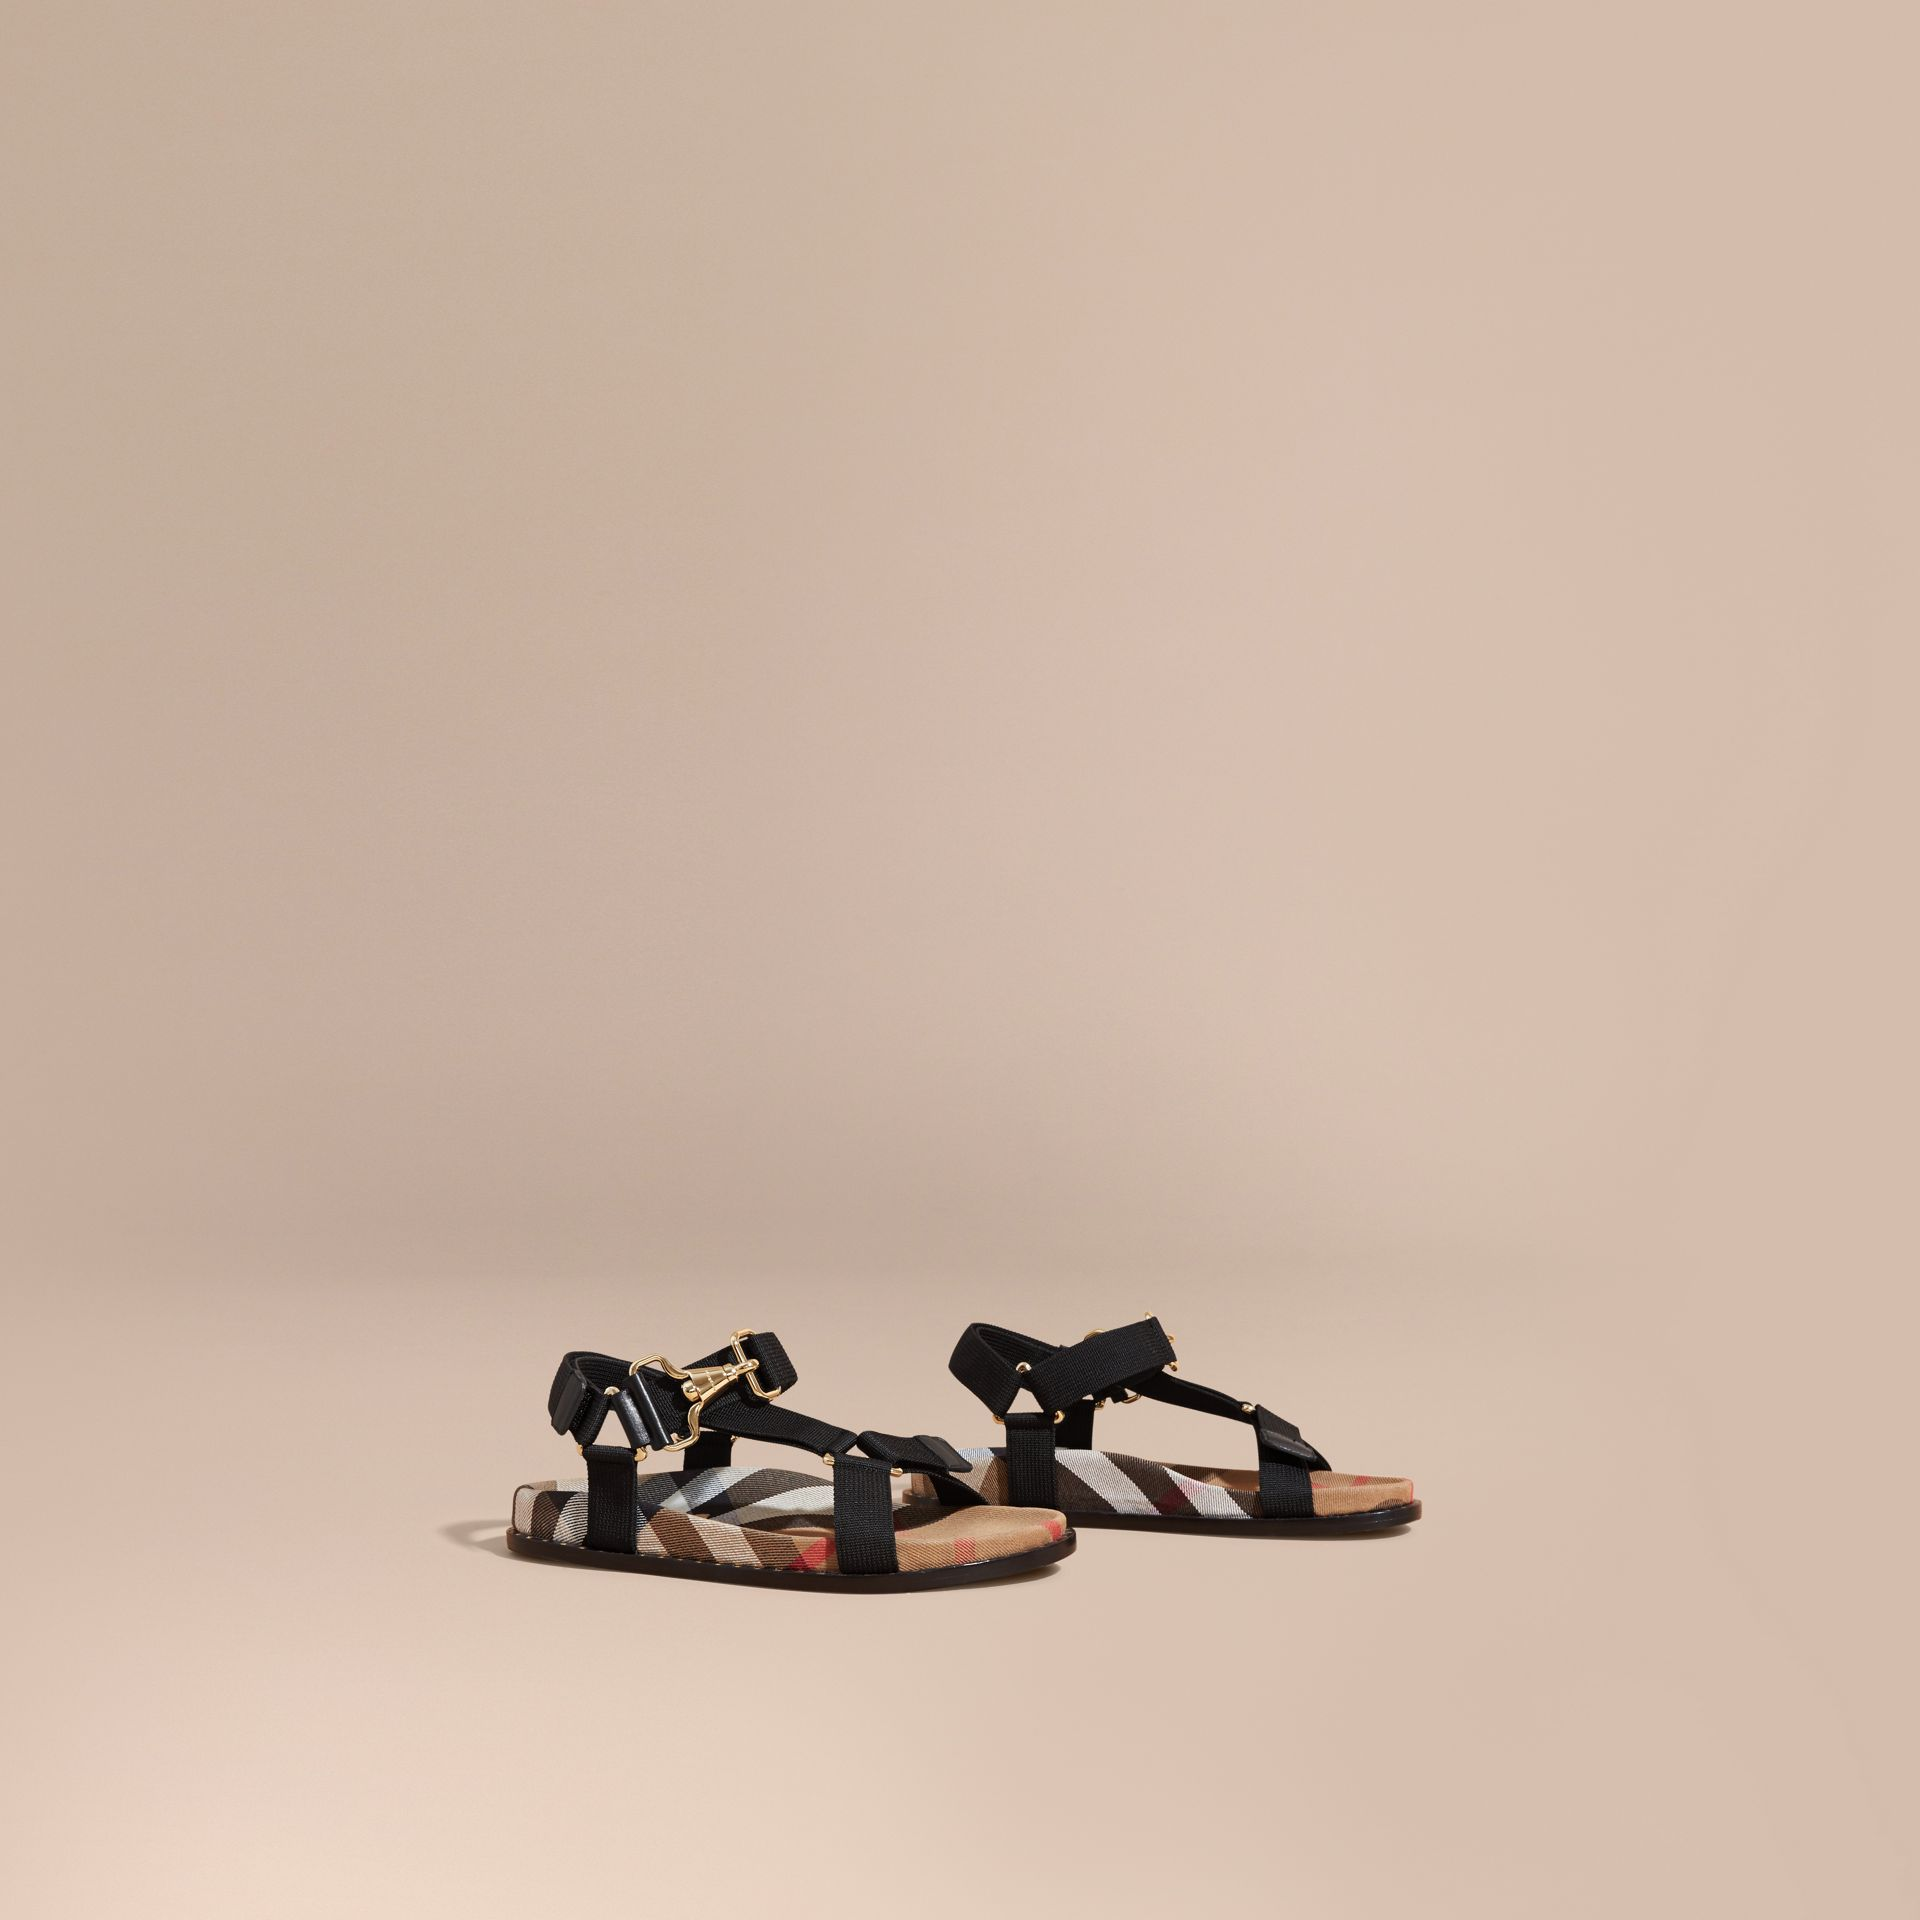 House Check Strappy Sandals with Hardware Detail in Black - Women | Burberry - gallery image 1